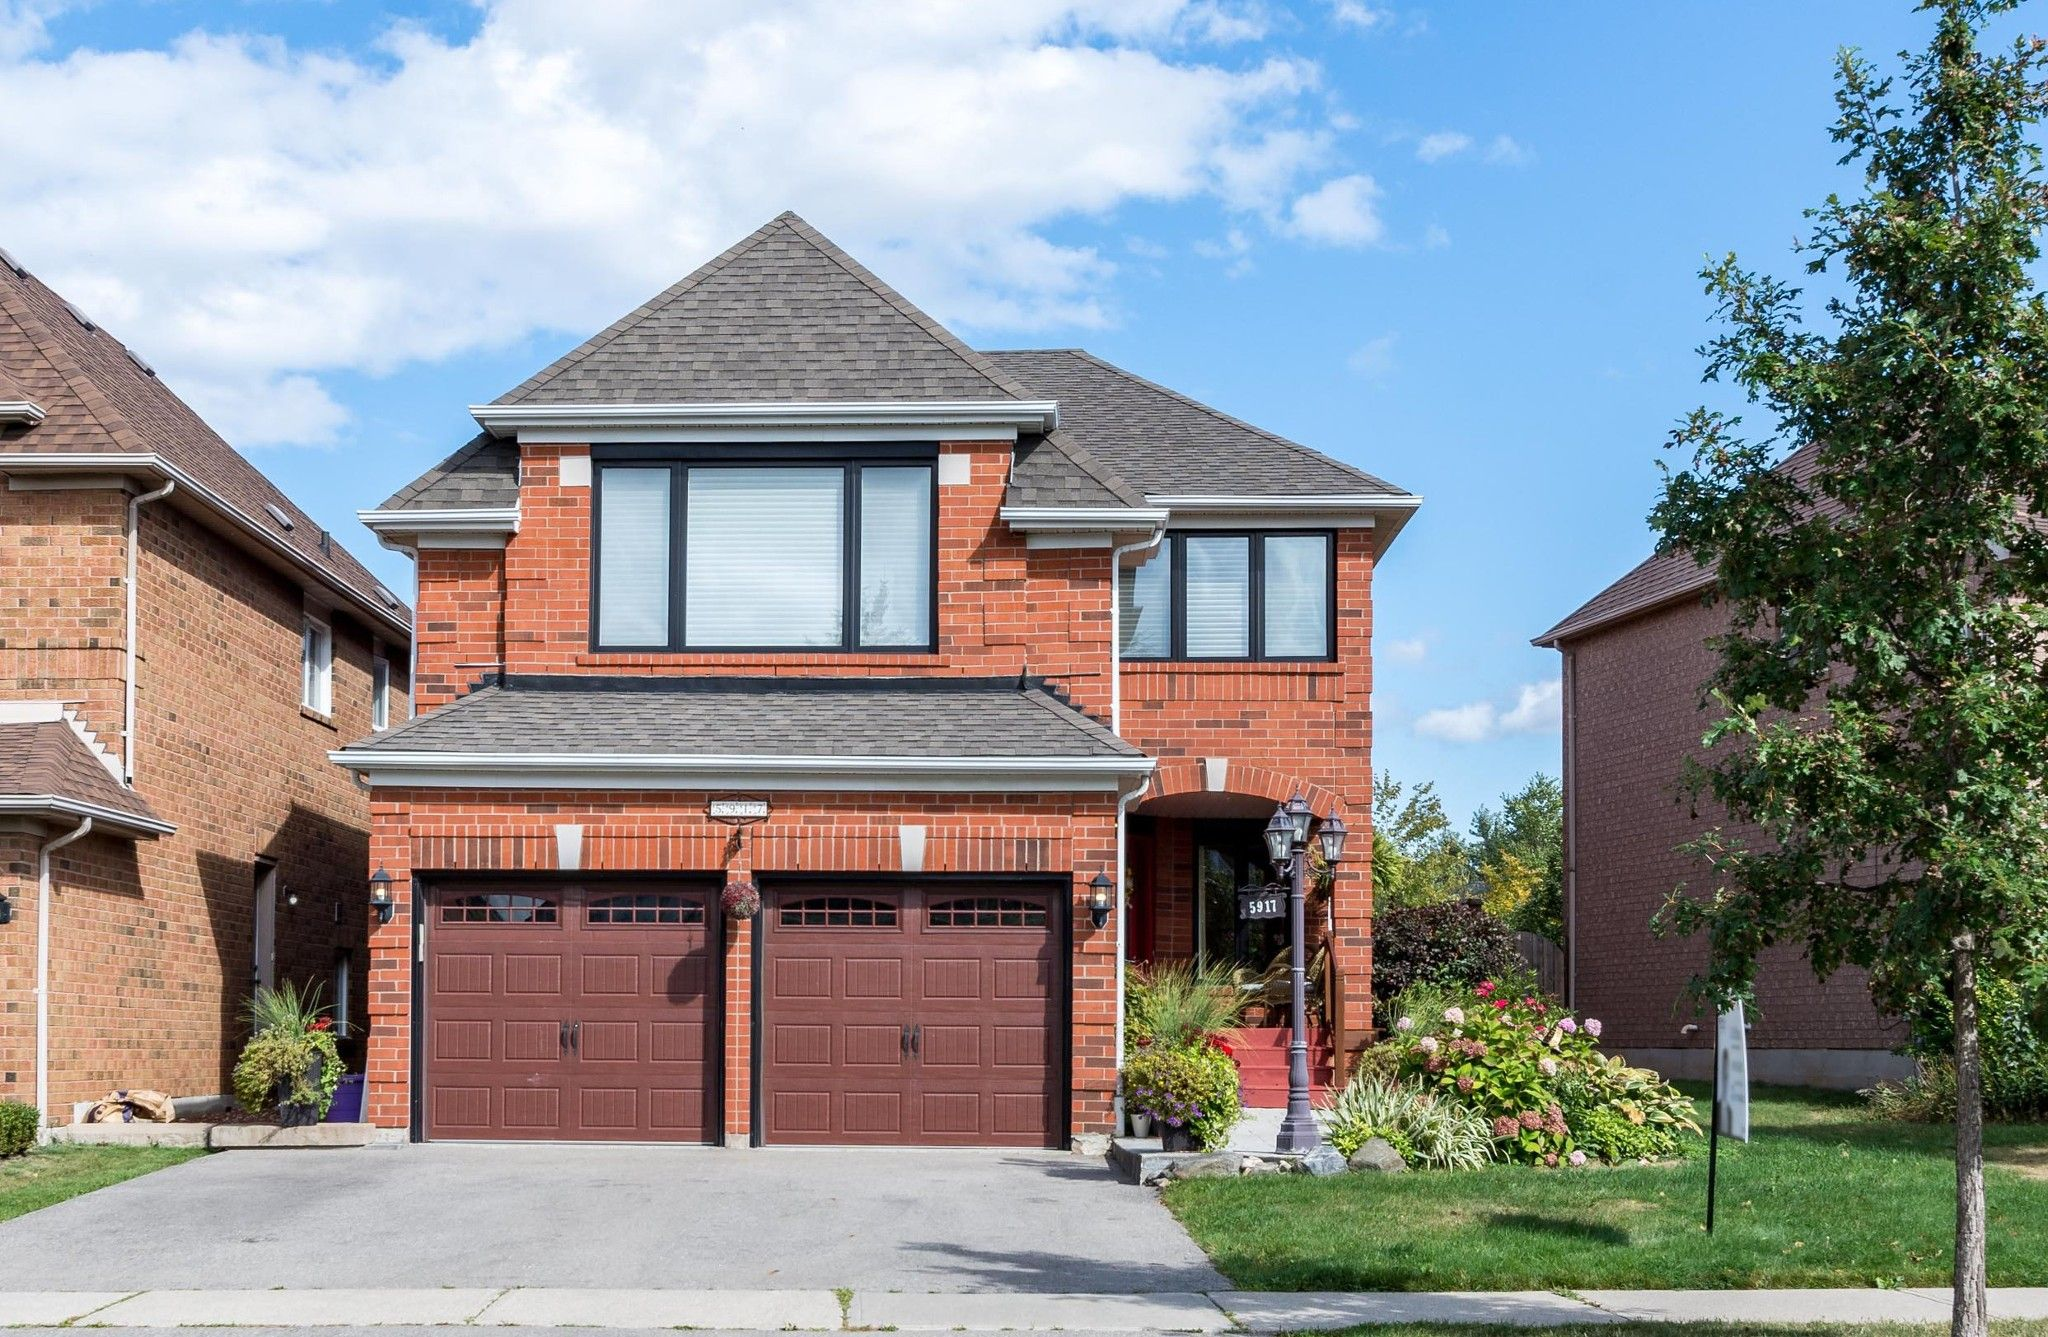 Main Photo: 5917 Greensboro Drive in Mississauga: Central Erin Mills House (2-Storey) for sale : MLS®# W4588271